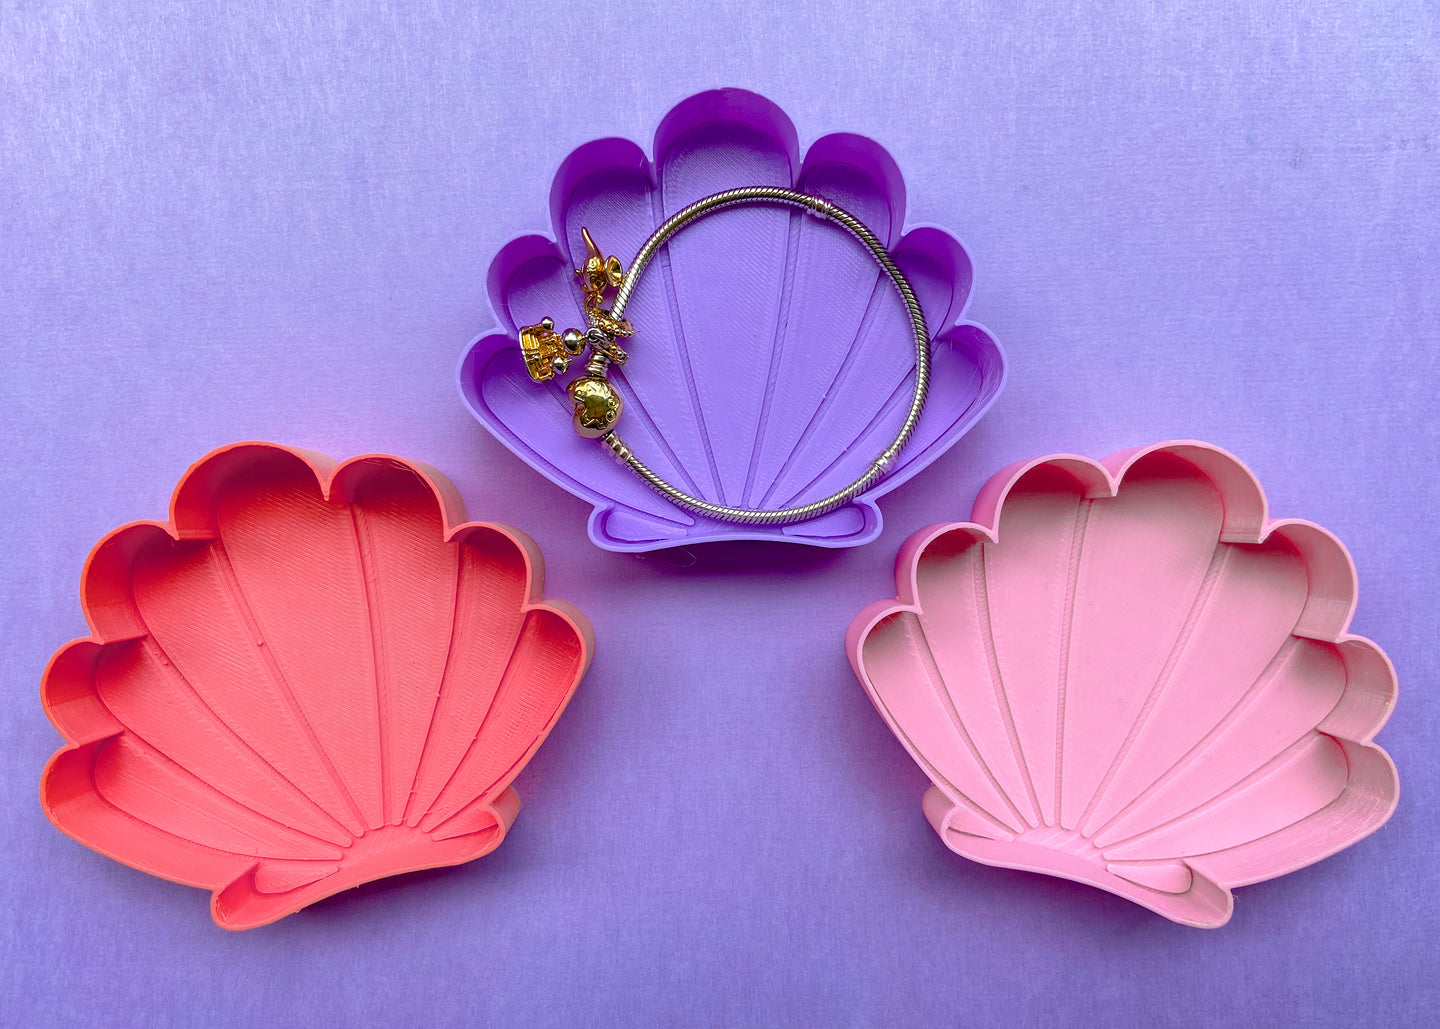 Mermaid Shell 3-Piece Jewelry Dish Set